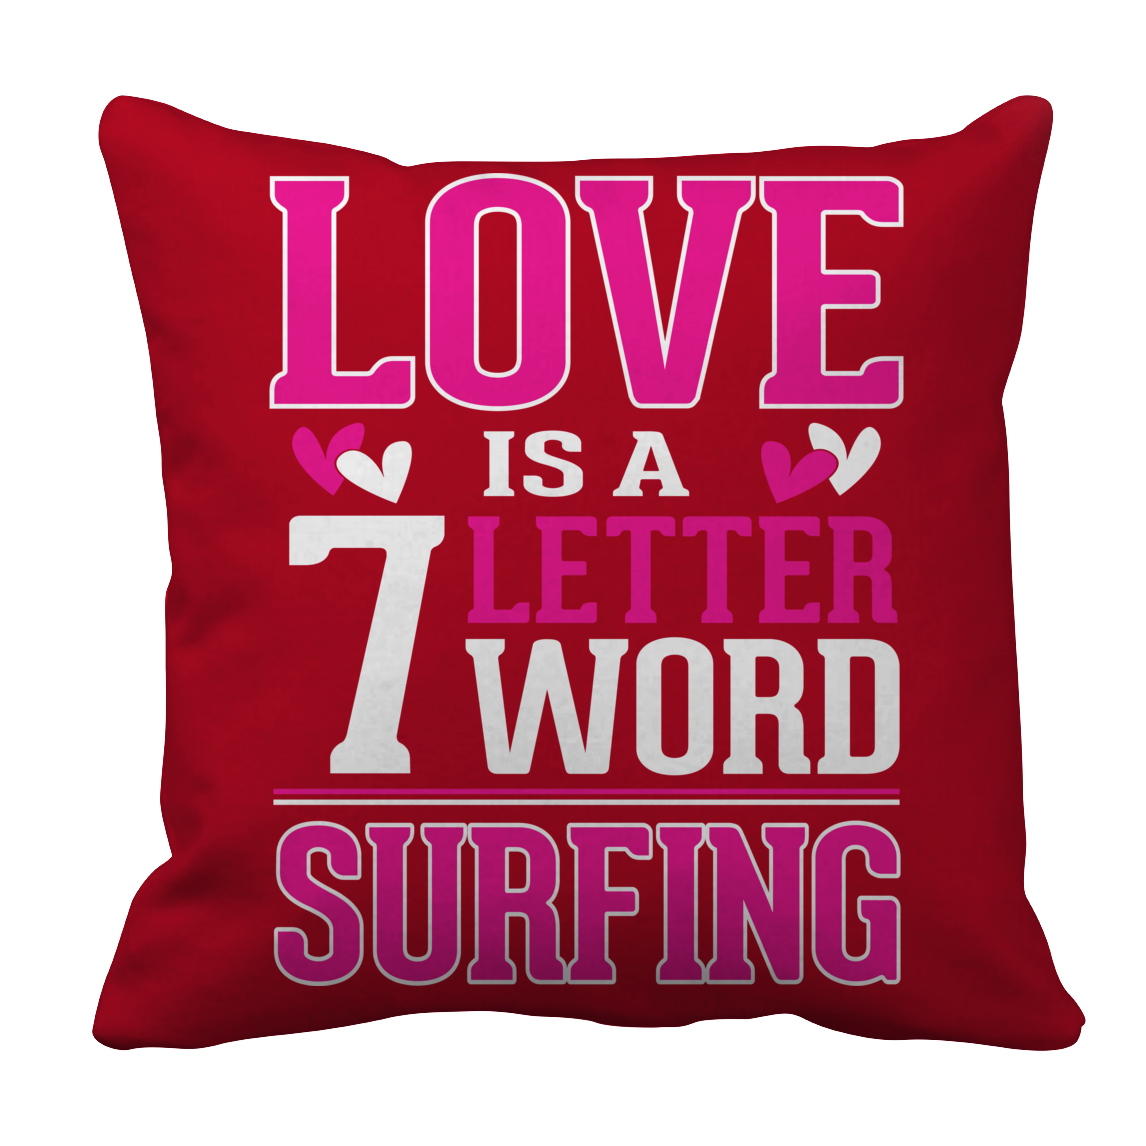 Limited Edition - Love Is a & Letter Word Surfing